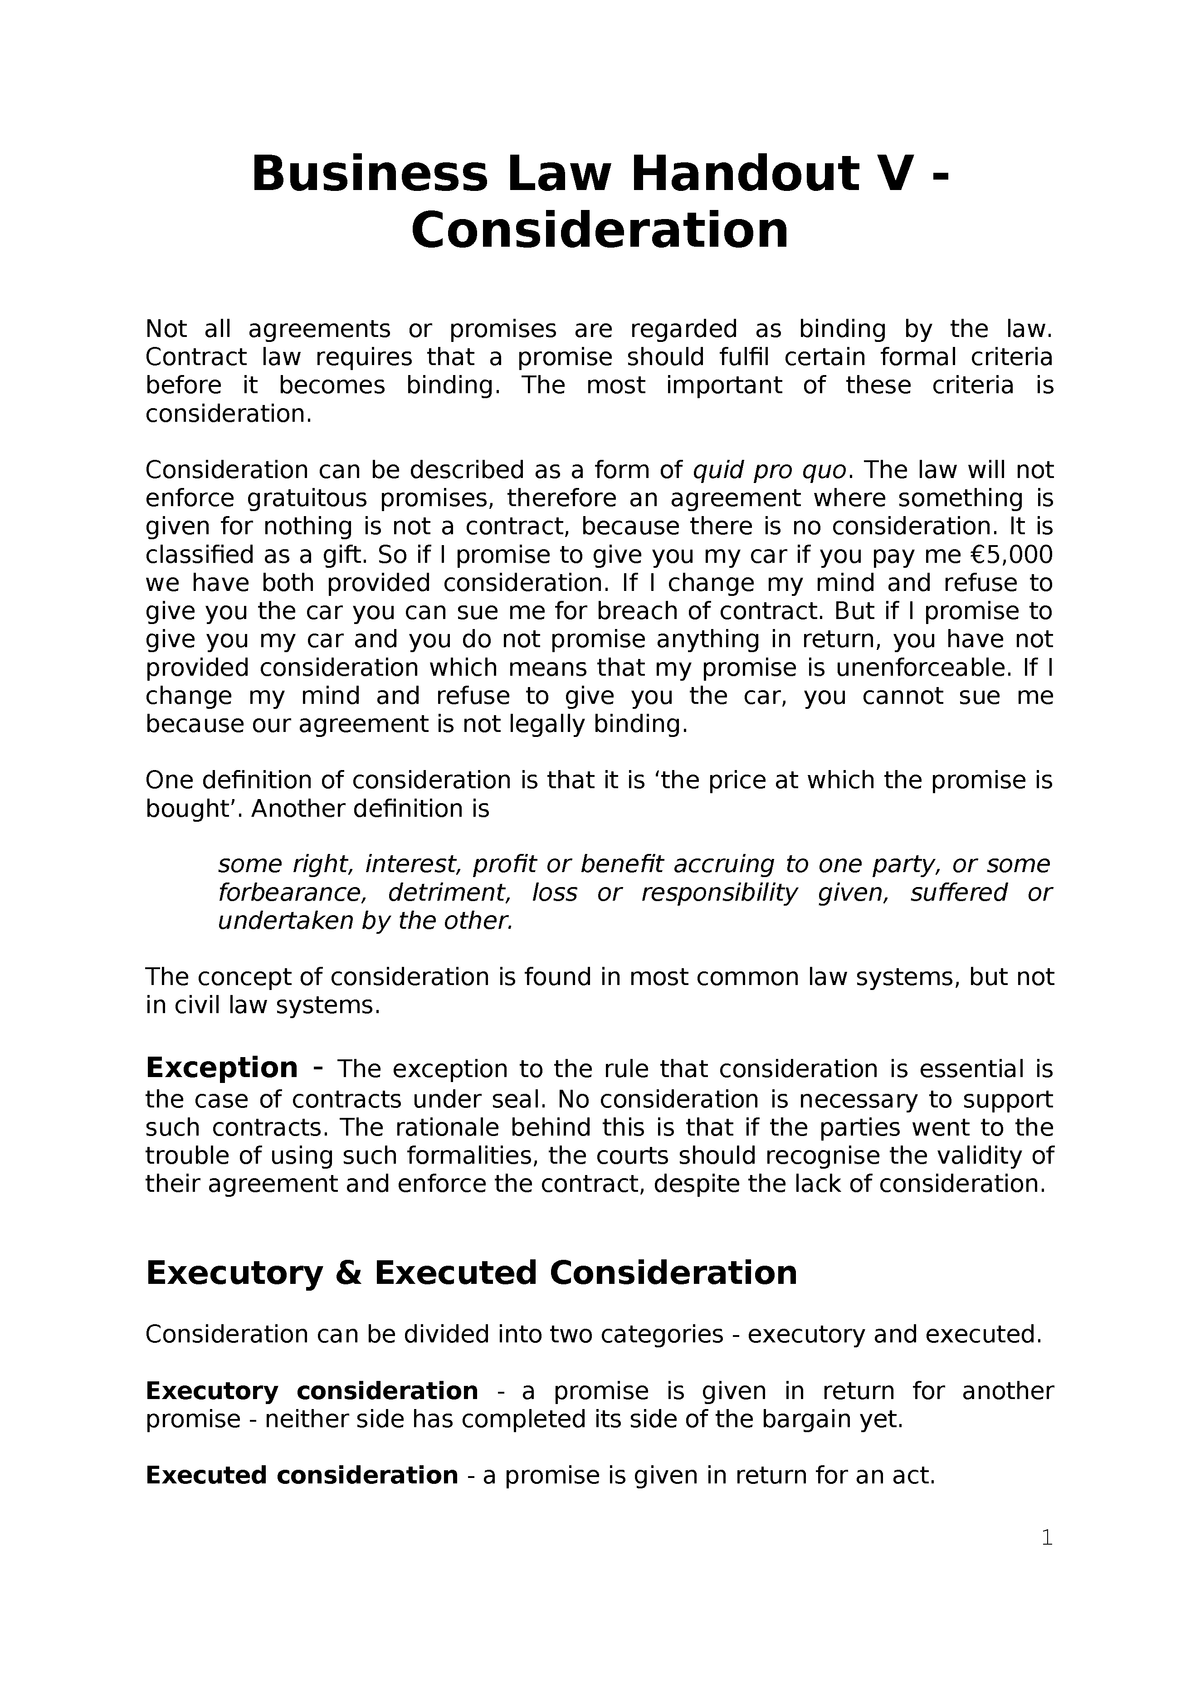 Business Law Handout 5 - Consideration - LW190 - NUI Galway - StuDocu